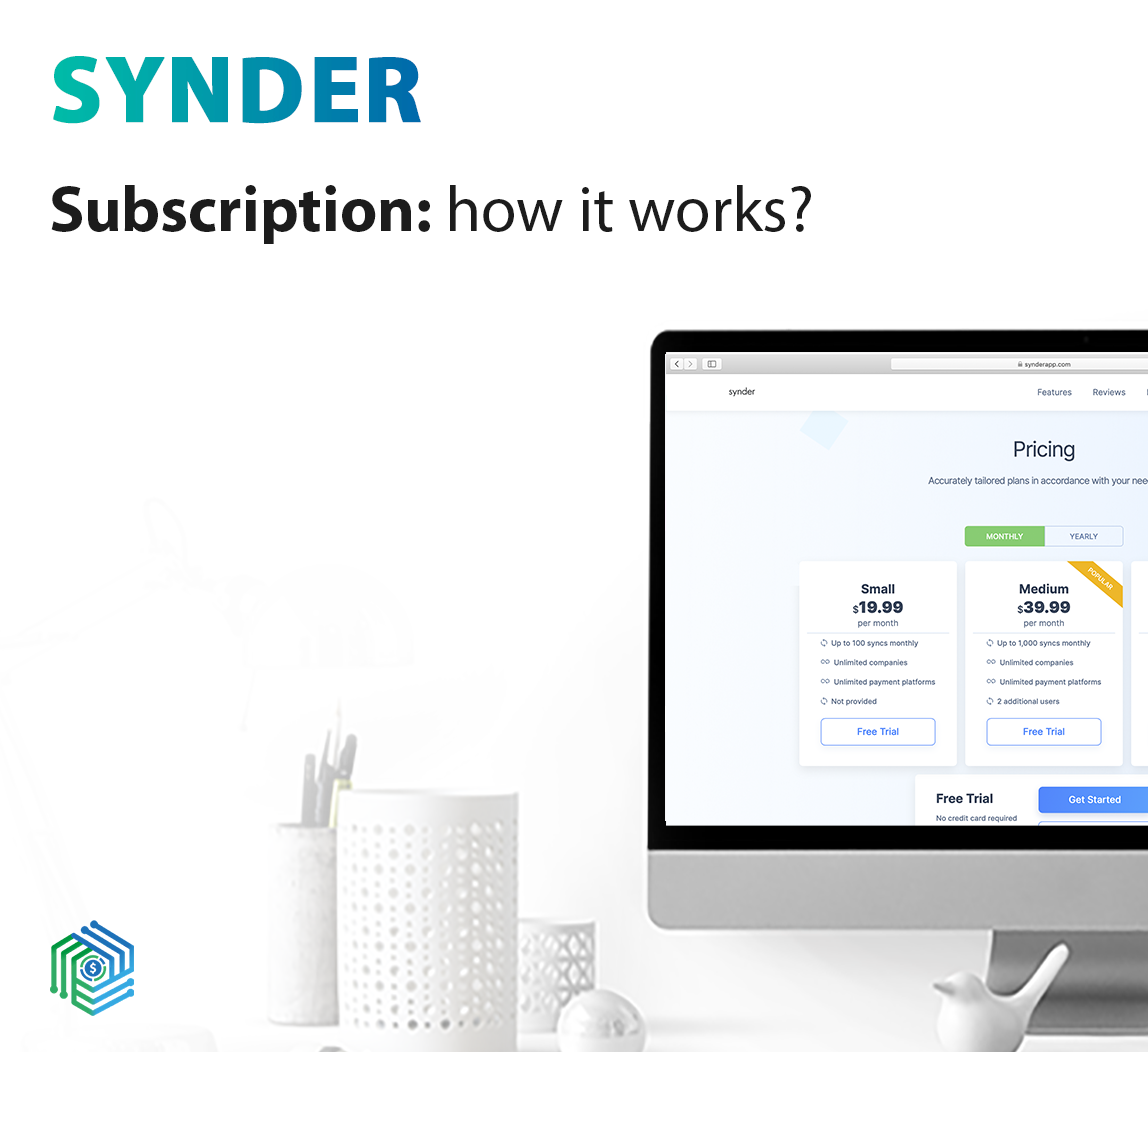 Synder subscription